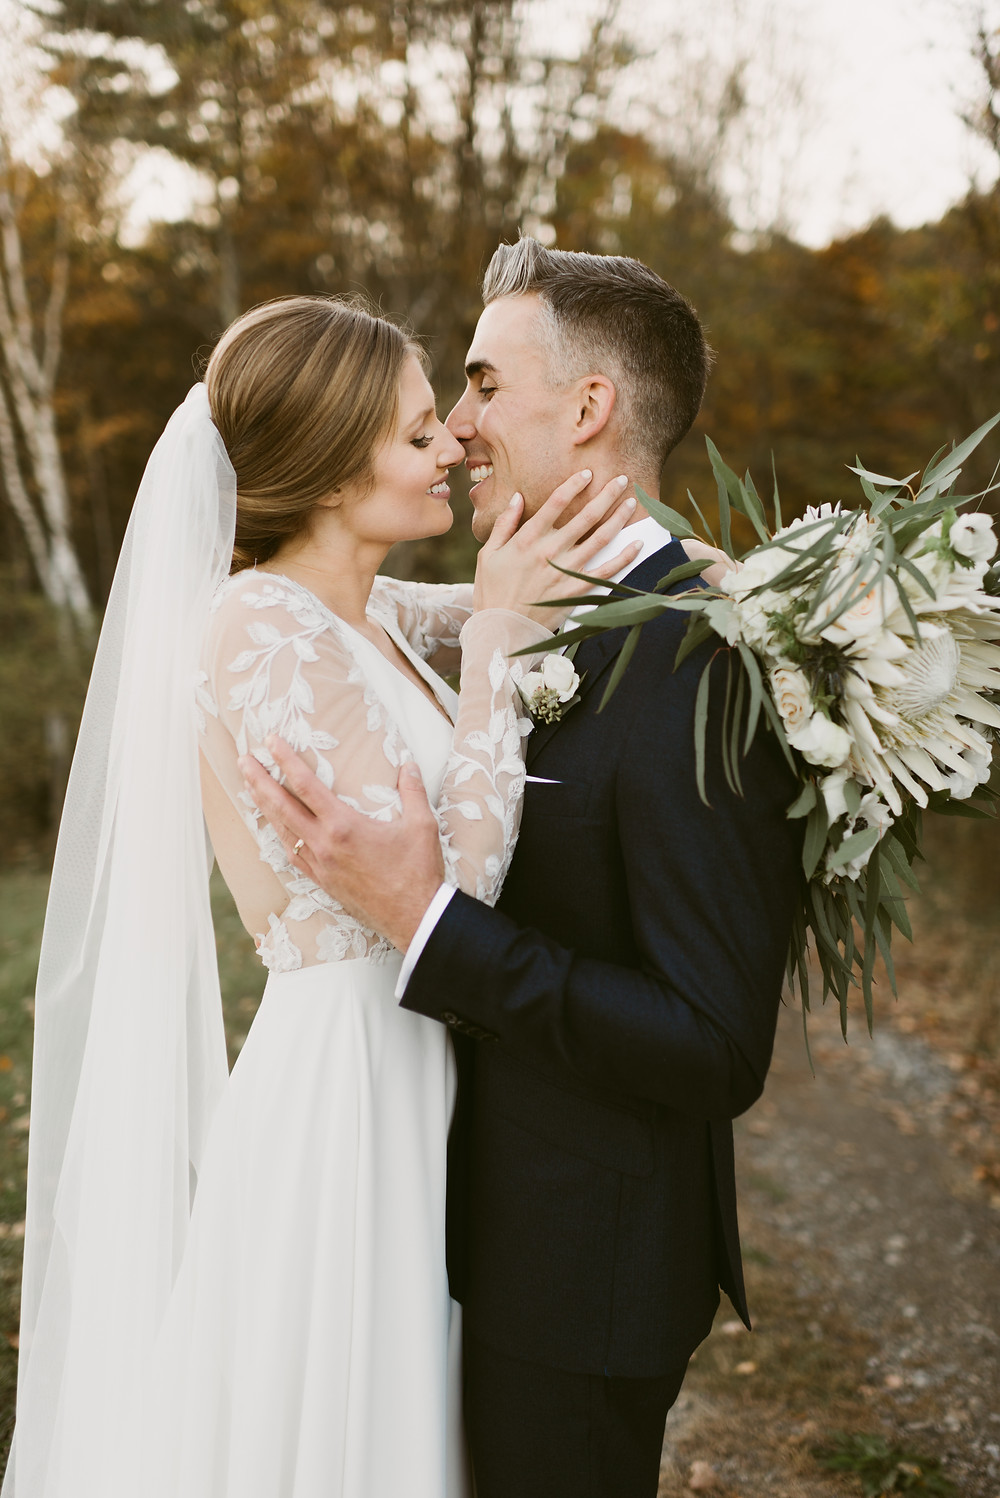 Romantic fall wedding at the Barn at Lord Howe Valley in Hudson Valley by Mountainaire Gatherings